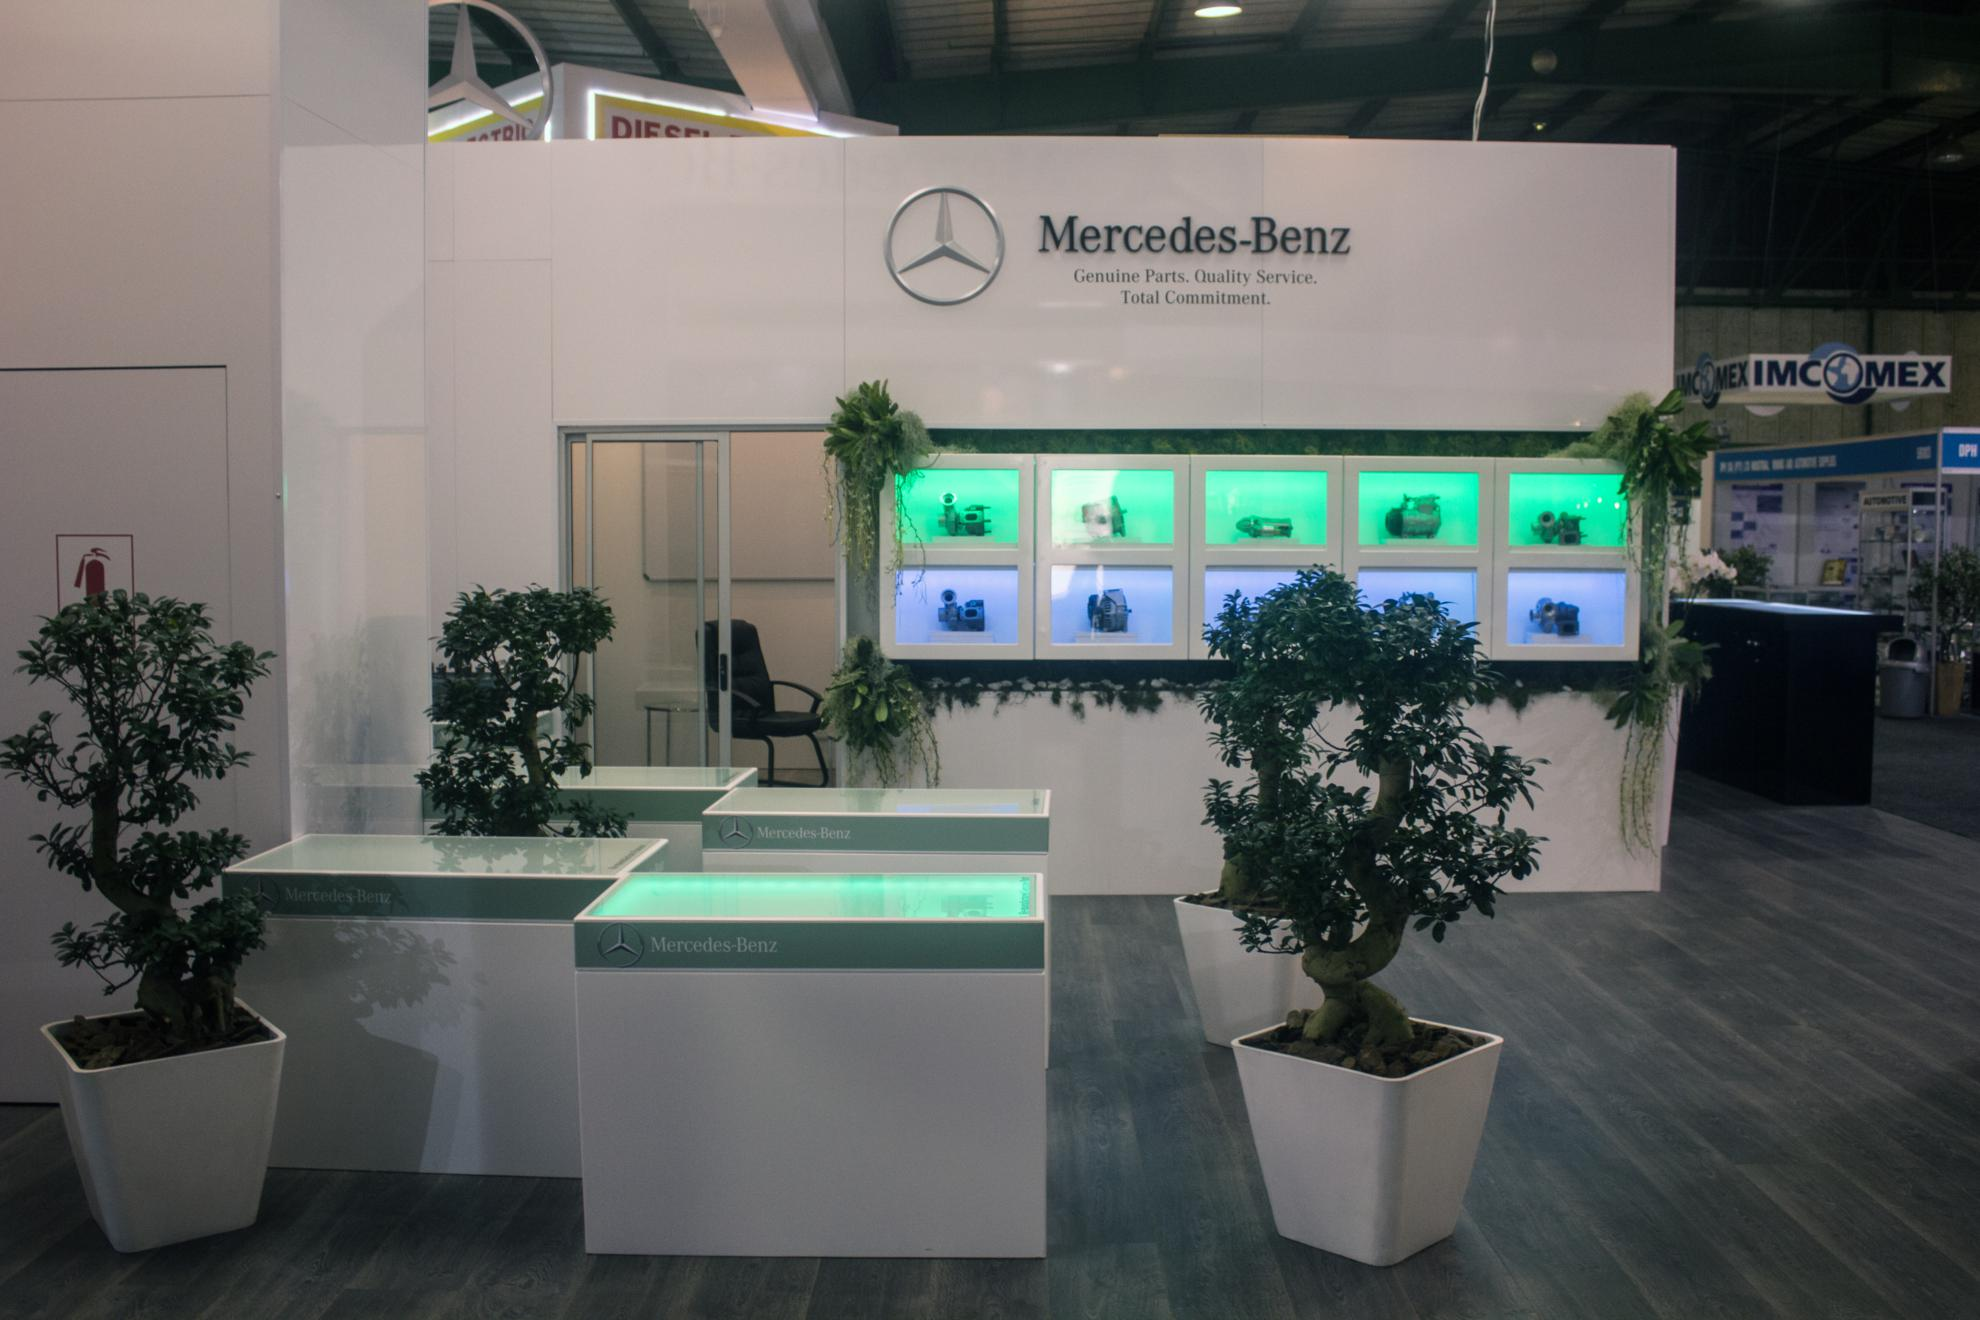 Mercedes-Benz-Automechanika-2013-08